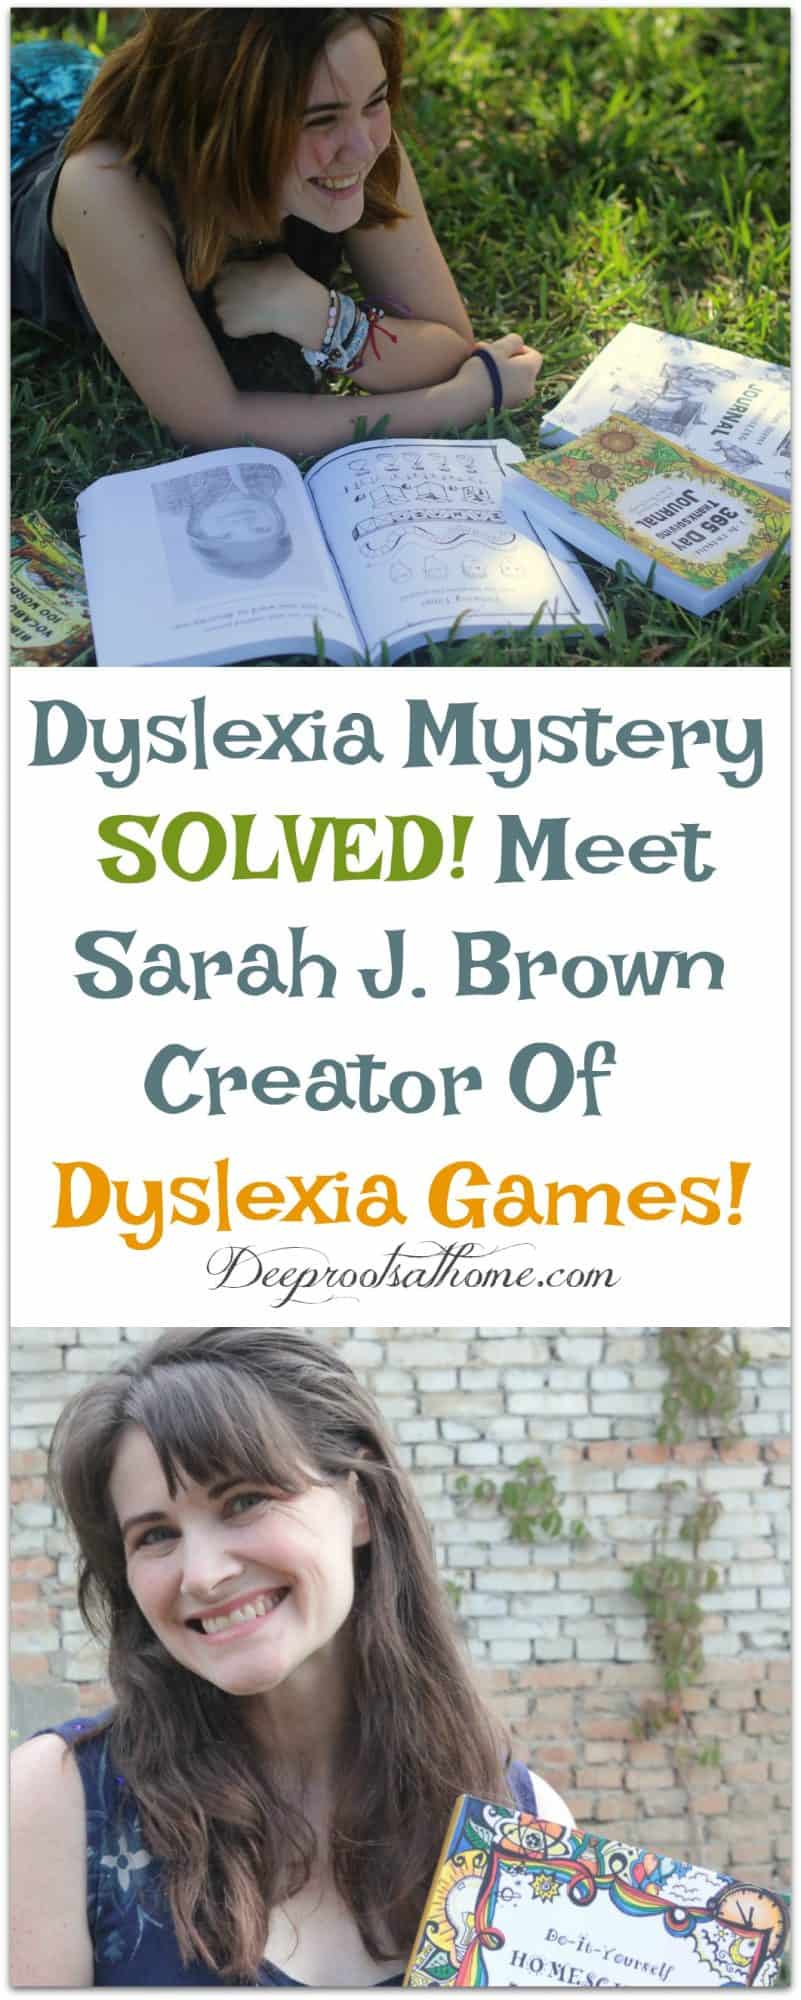 Dyslexia Mystery SOLVED! Meet Sarah J. Brown Creator Of Dyslexia Games!, Products from Dyslexia Games